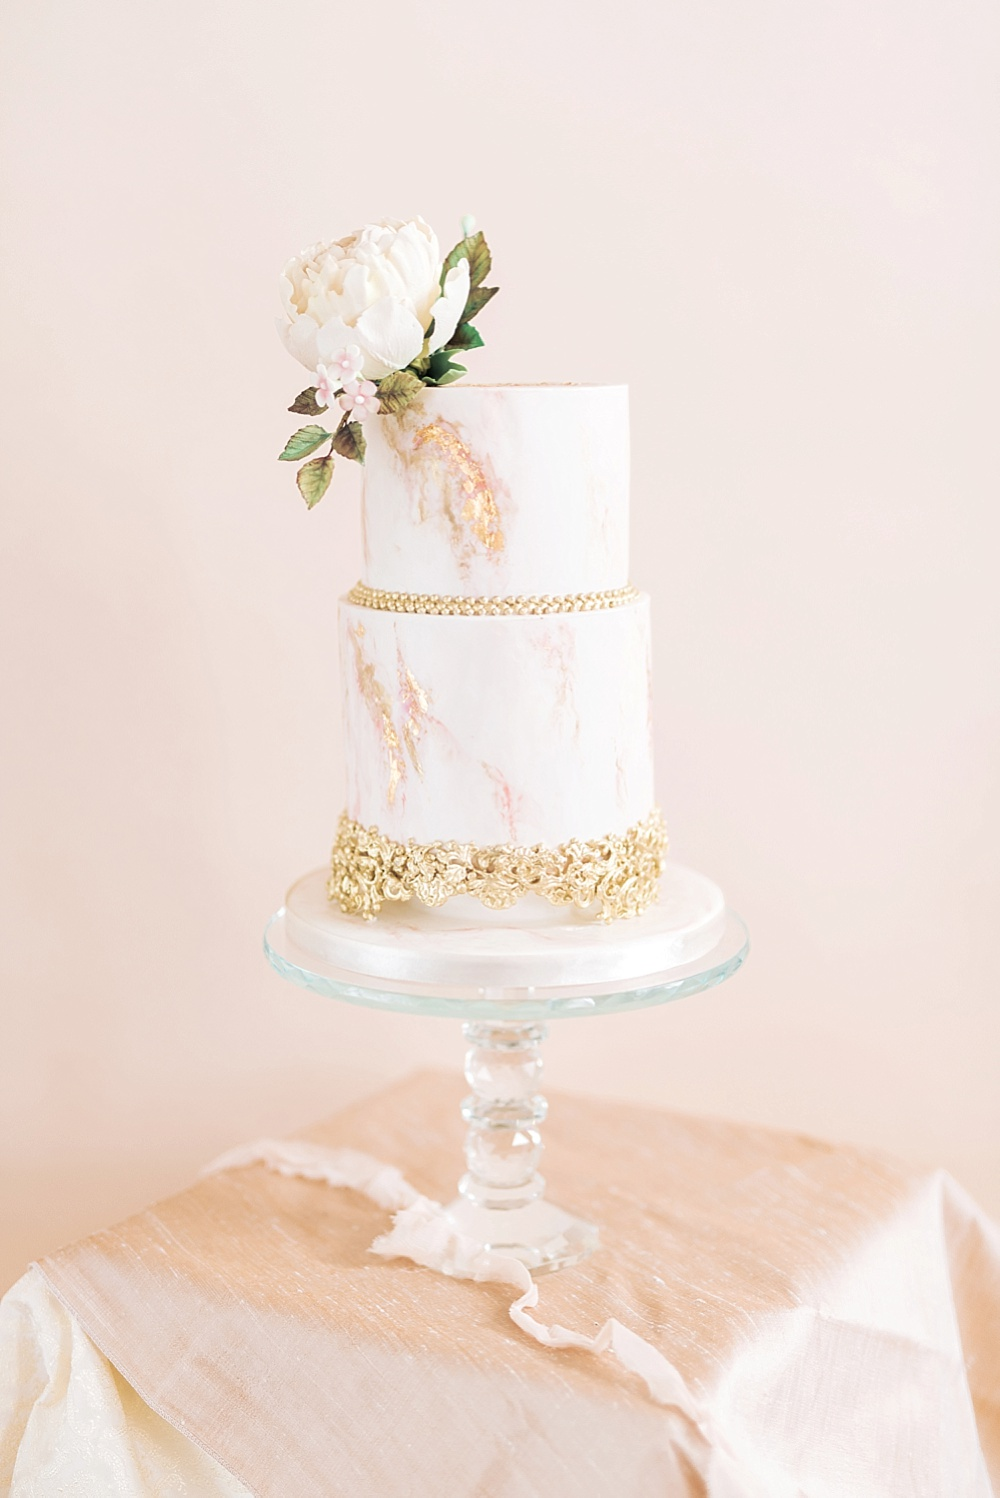 Venetian Marble Cake By The Frostery Image Emma Pilkington